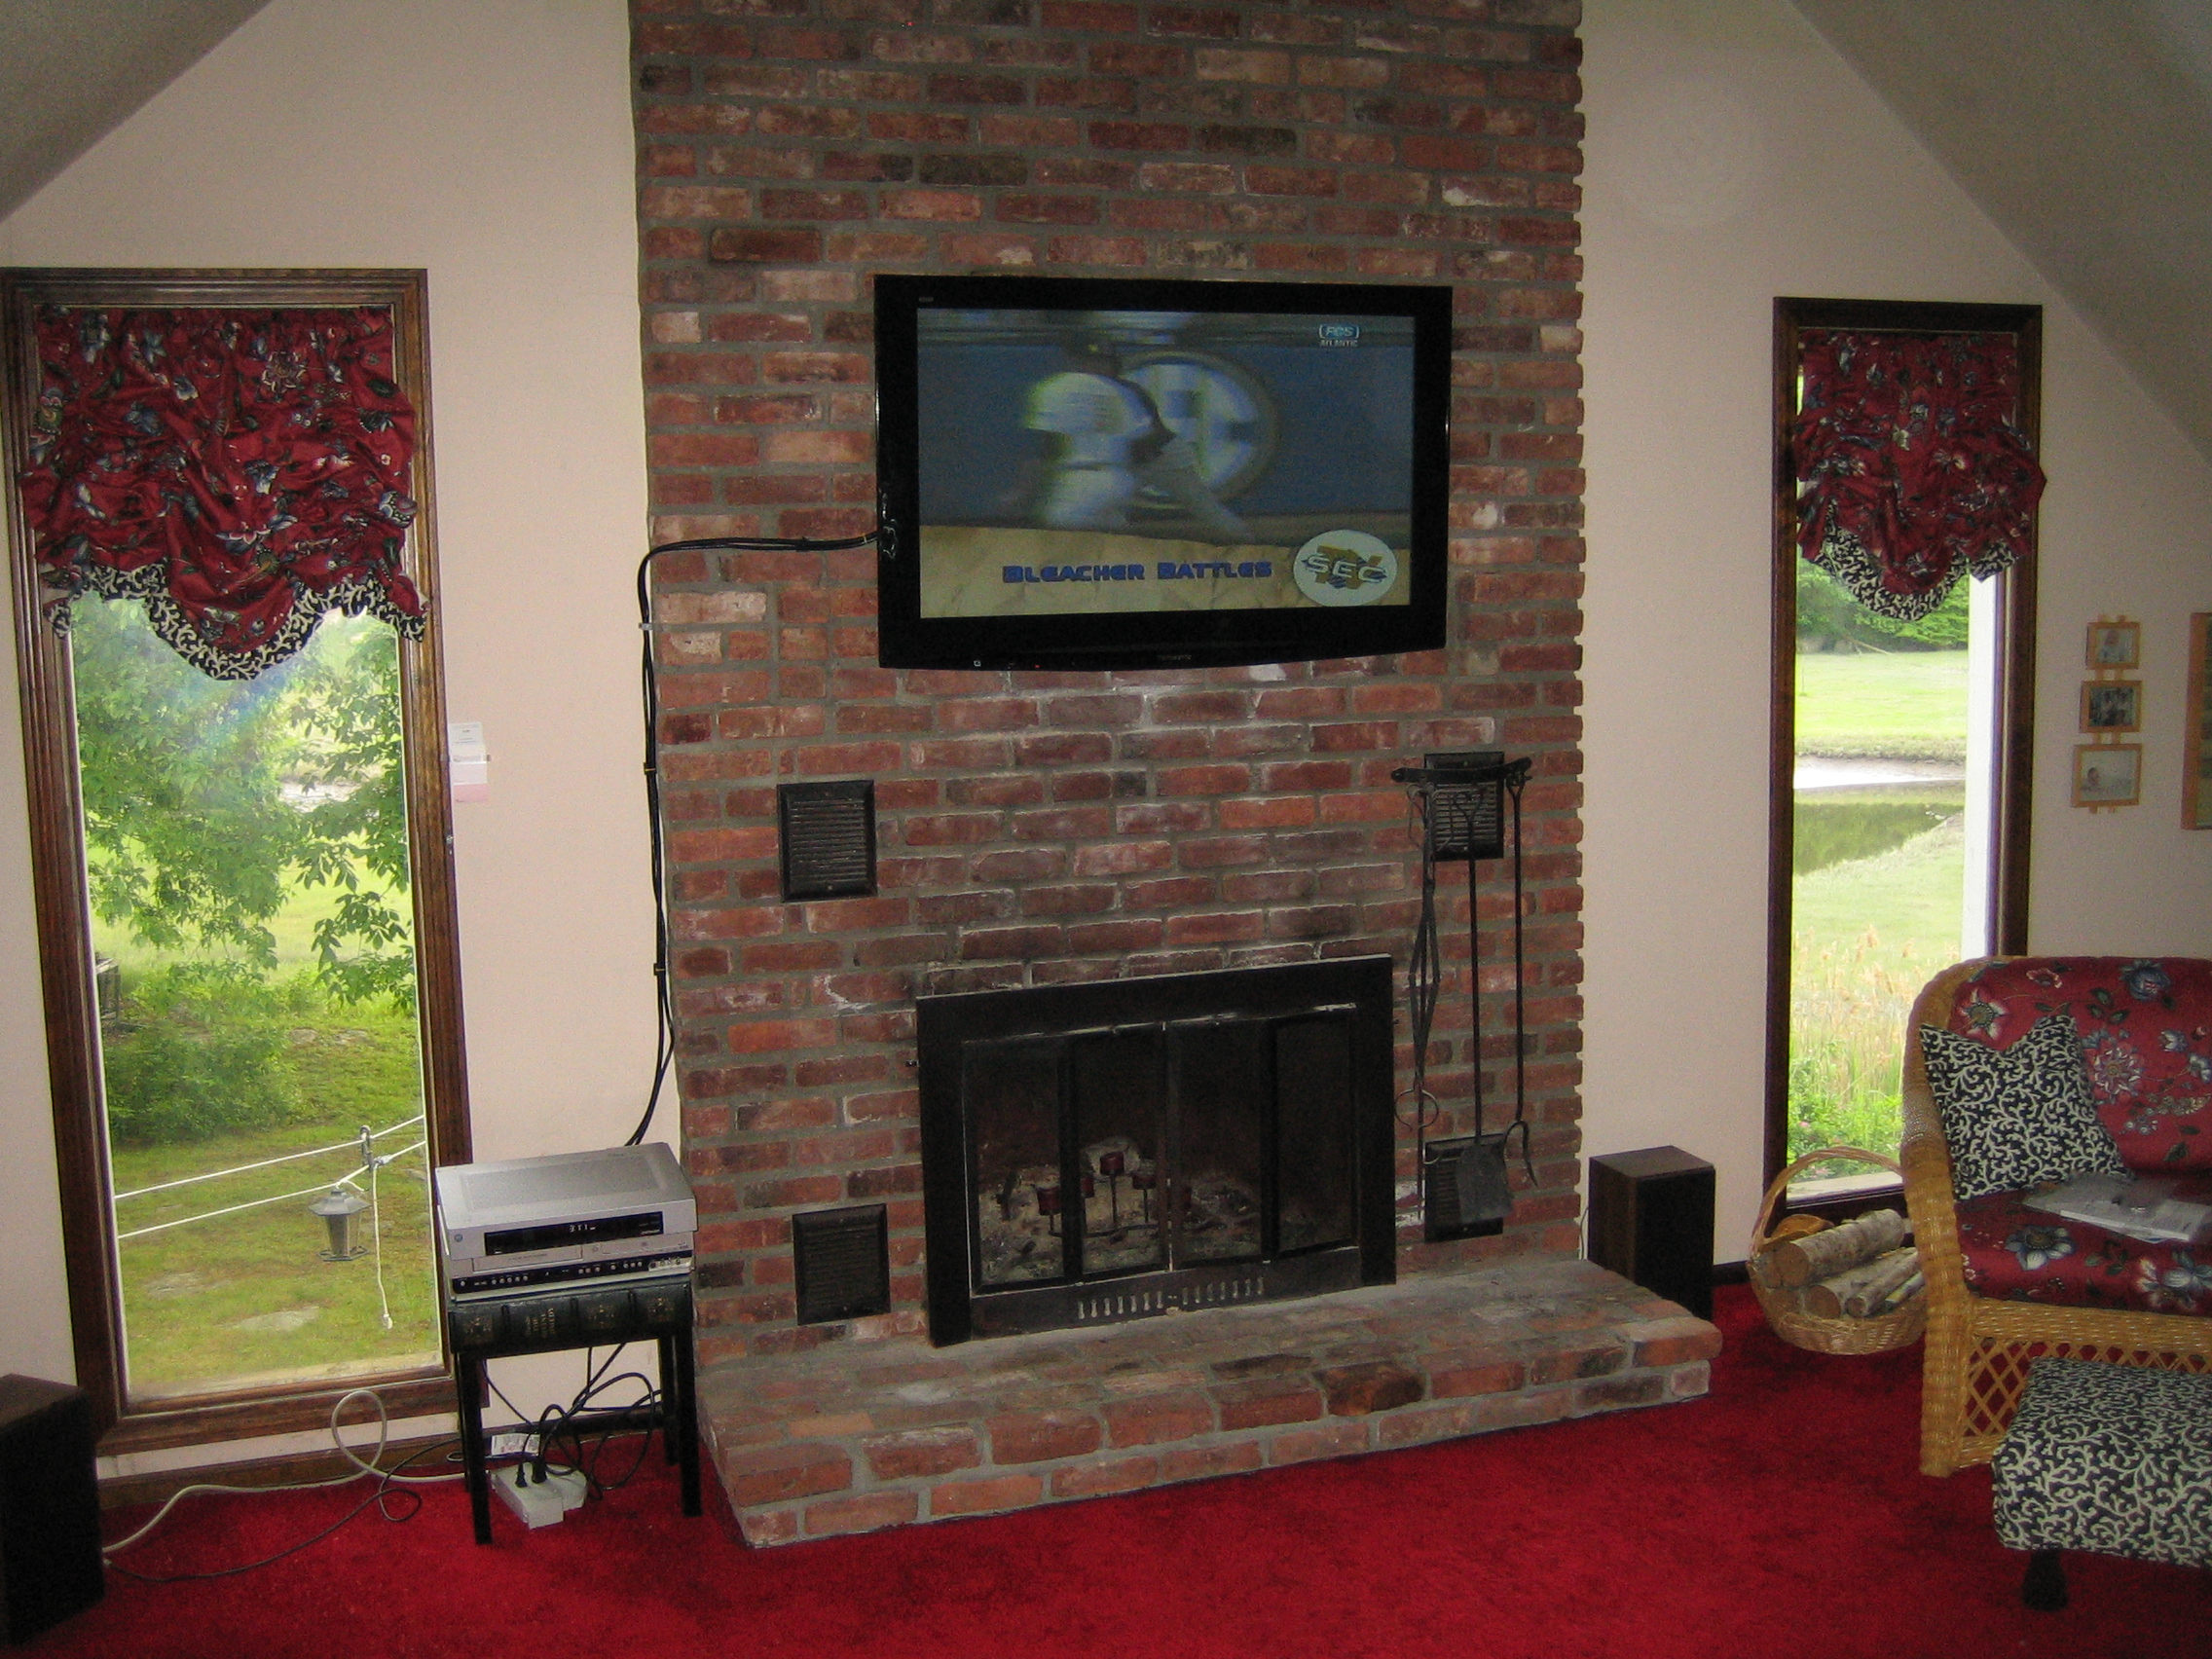 Tv mounting ideas tv installation over a brick fireplace living room gorgeous why a tv should never be mounted over fireplace of mounting tv yes you can mount your tv to your brick fireplace without the wires showing the wires are siliconed into the morta